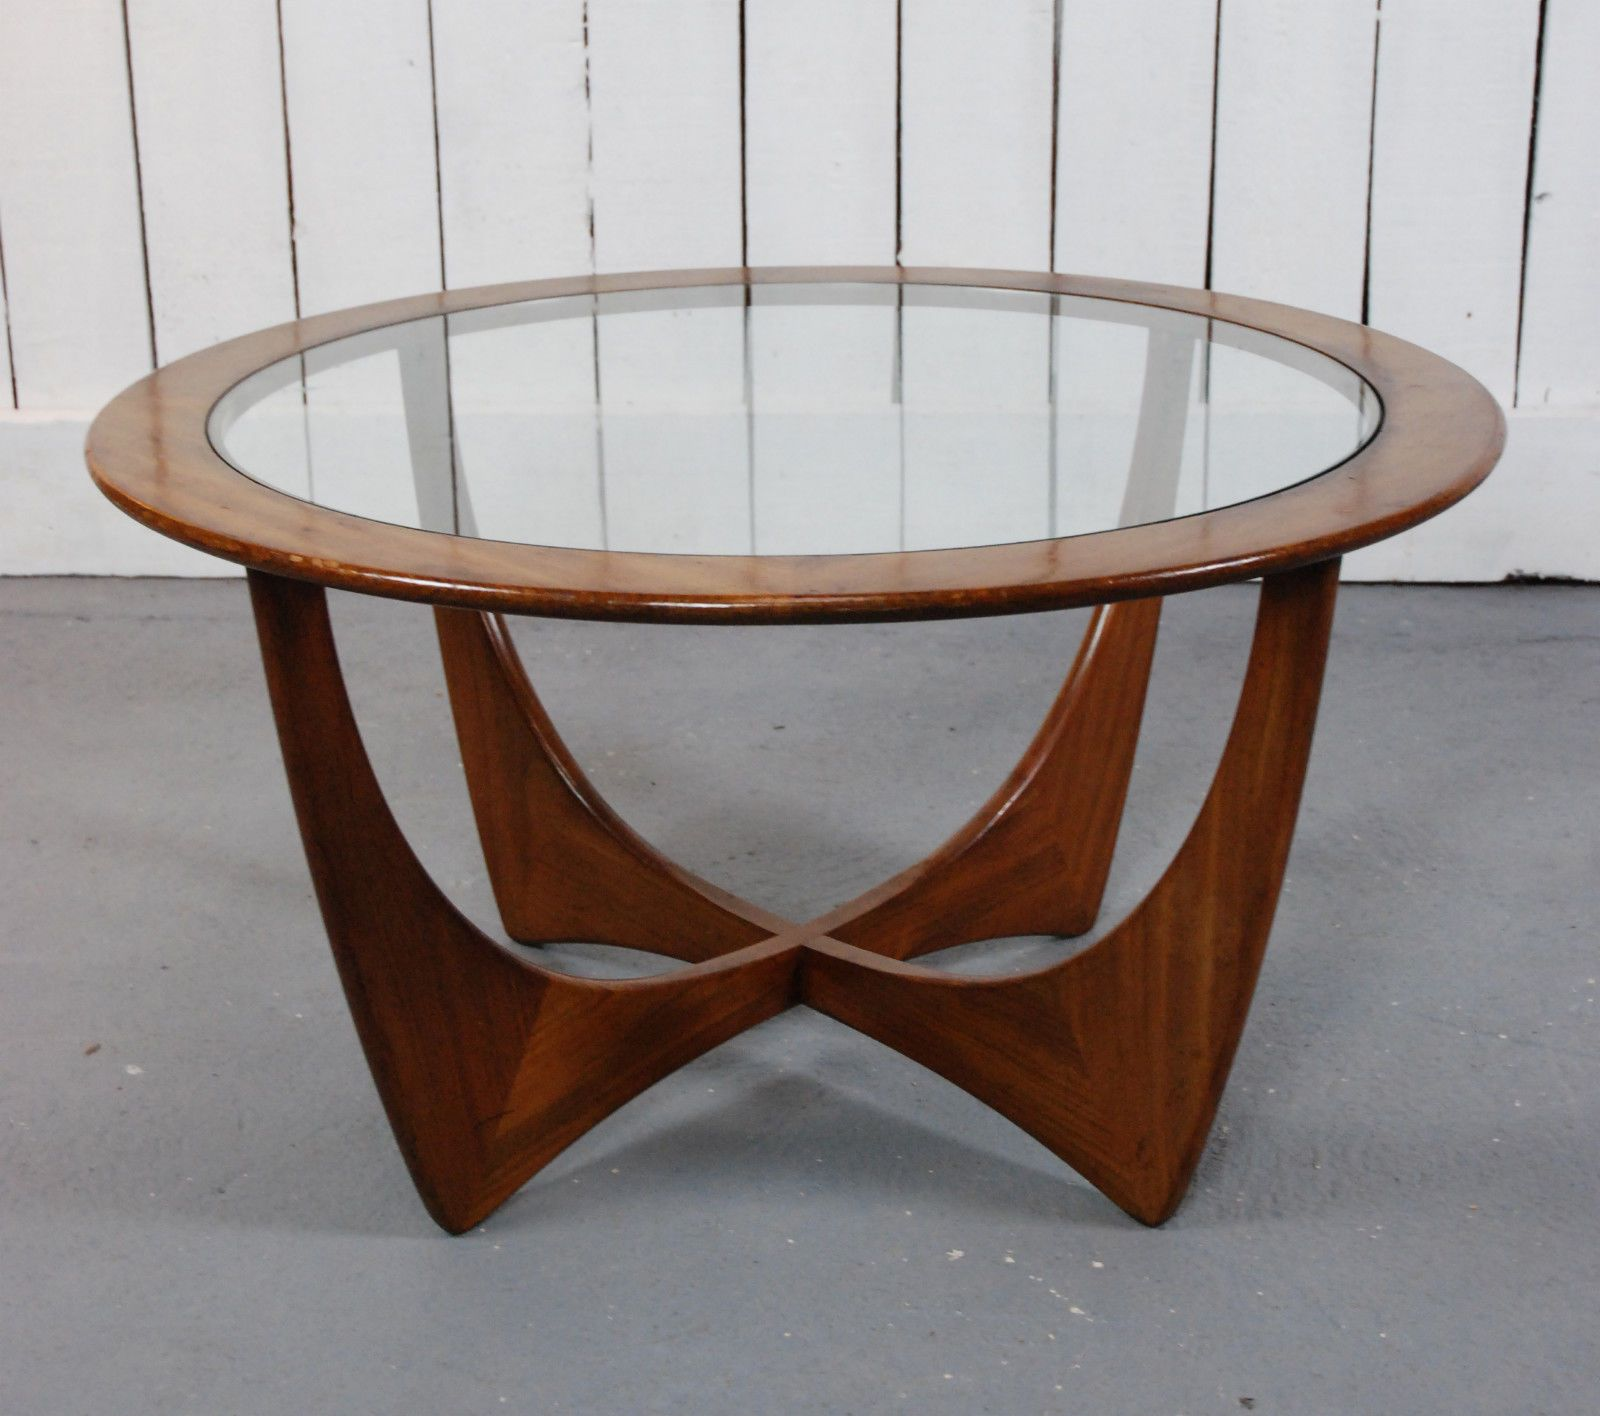 Round Glass Top Coffee Table Retro Teak G Plan Astro Coffee Table Vintage Danish Style